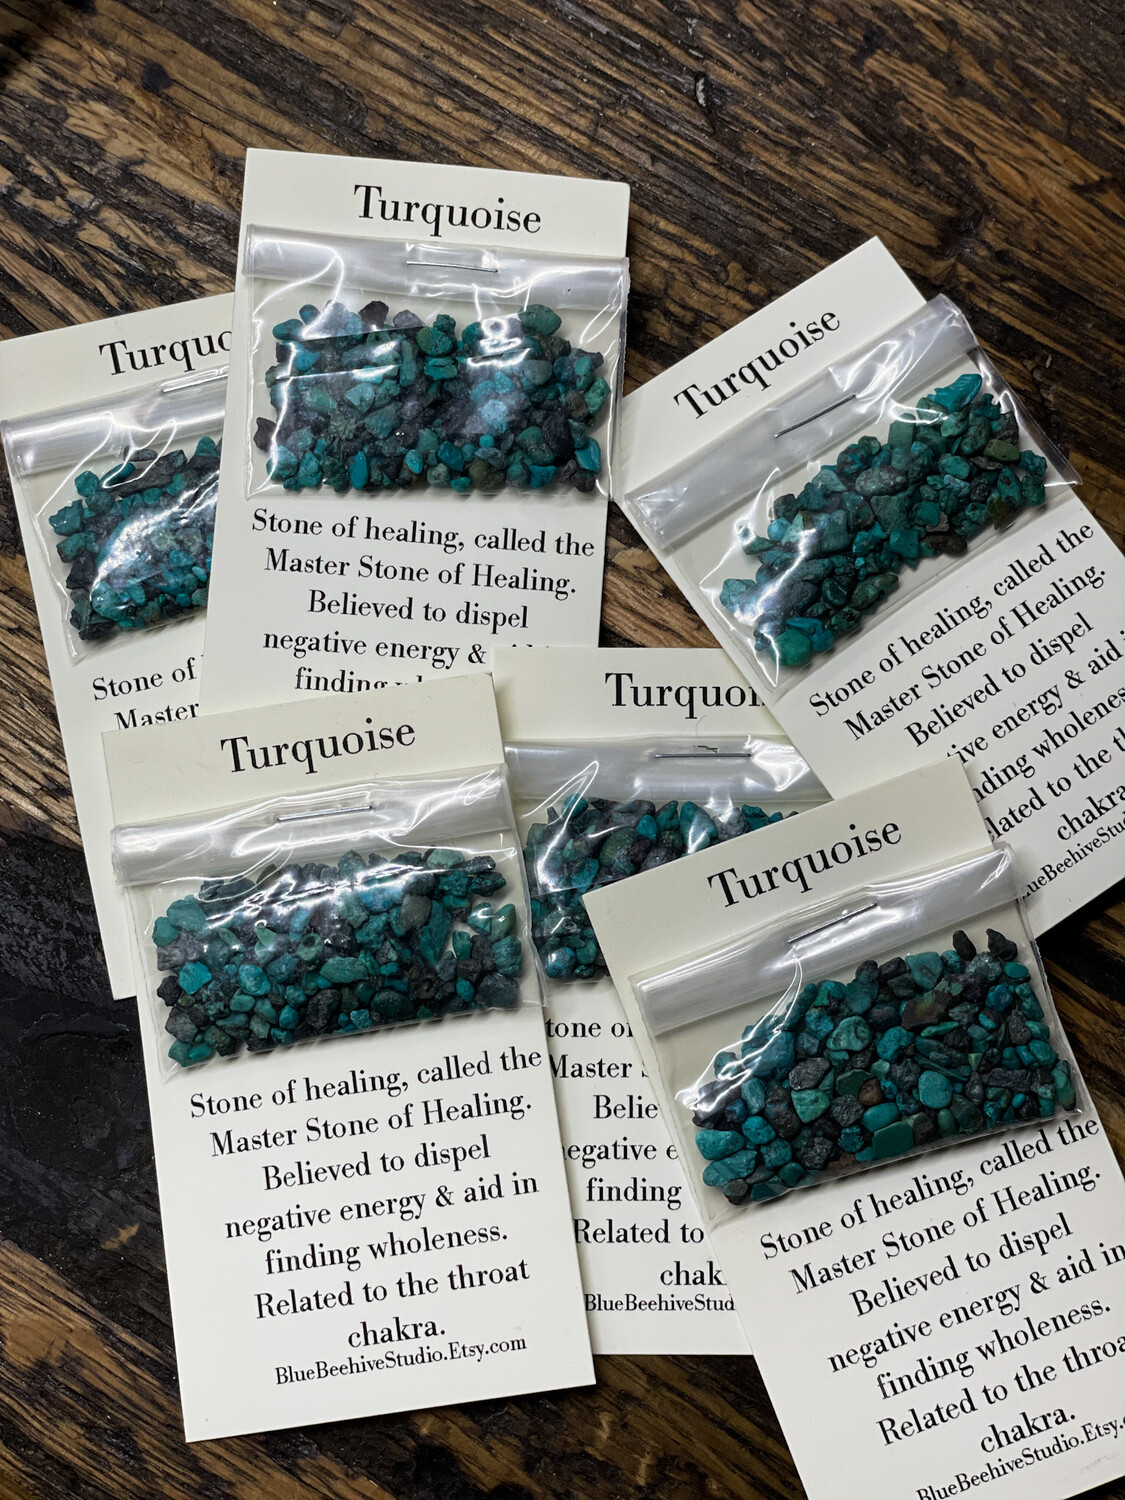 Turquoise chips